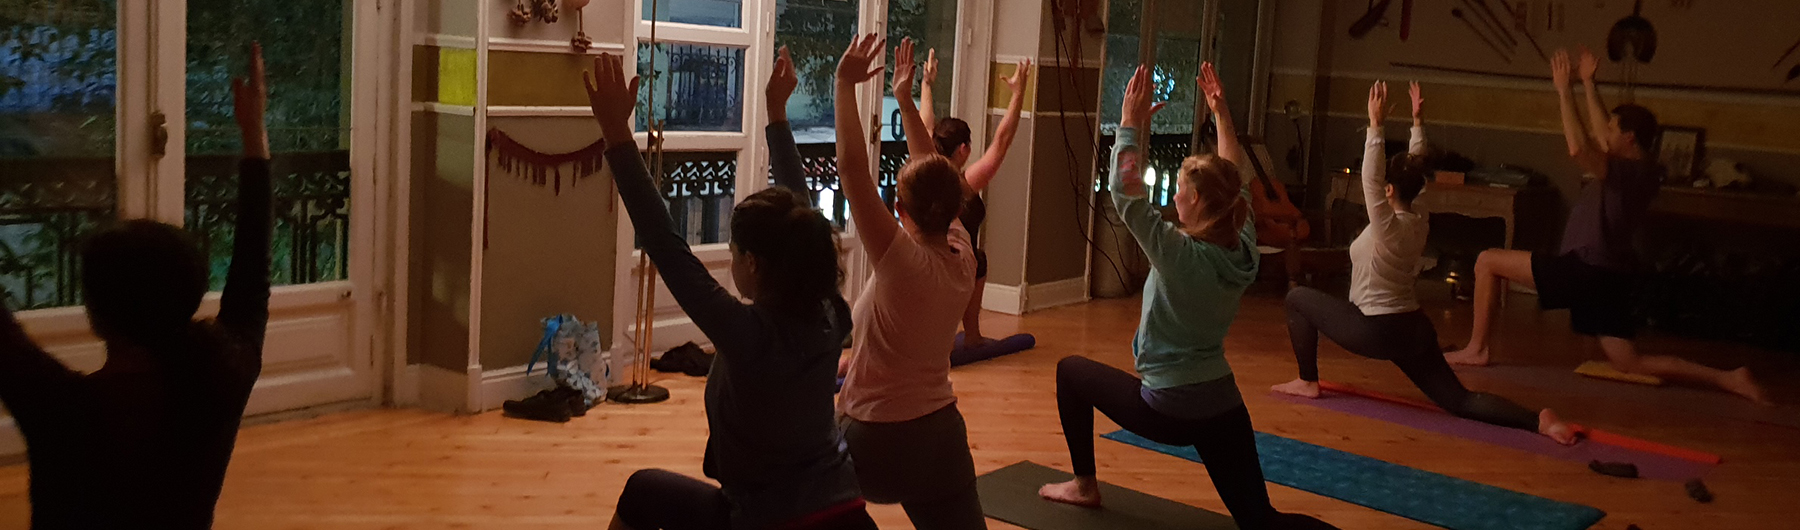 Madrid For Refugees Benefit Yoga and Meditation